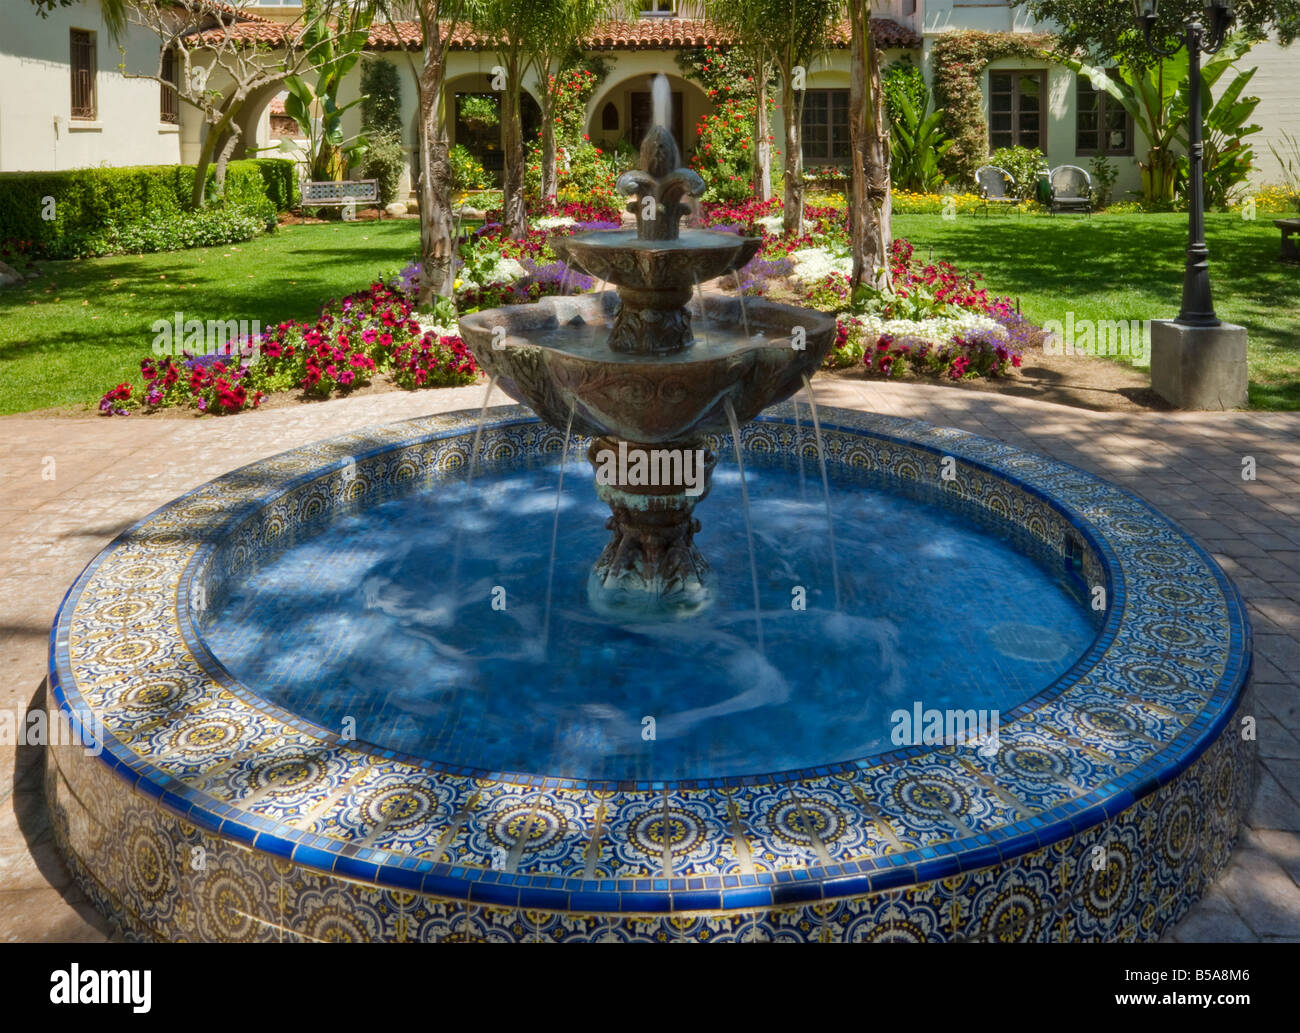 San Buenaventura Mission High Resolution Stock Photography And Images Alamy